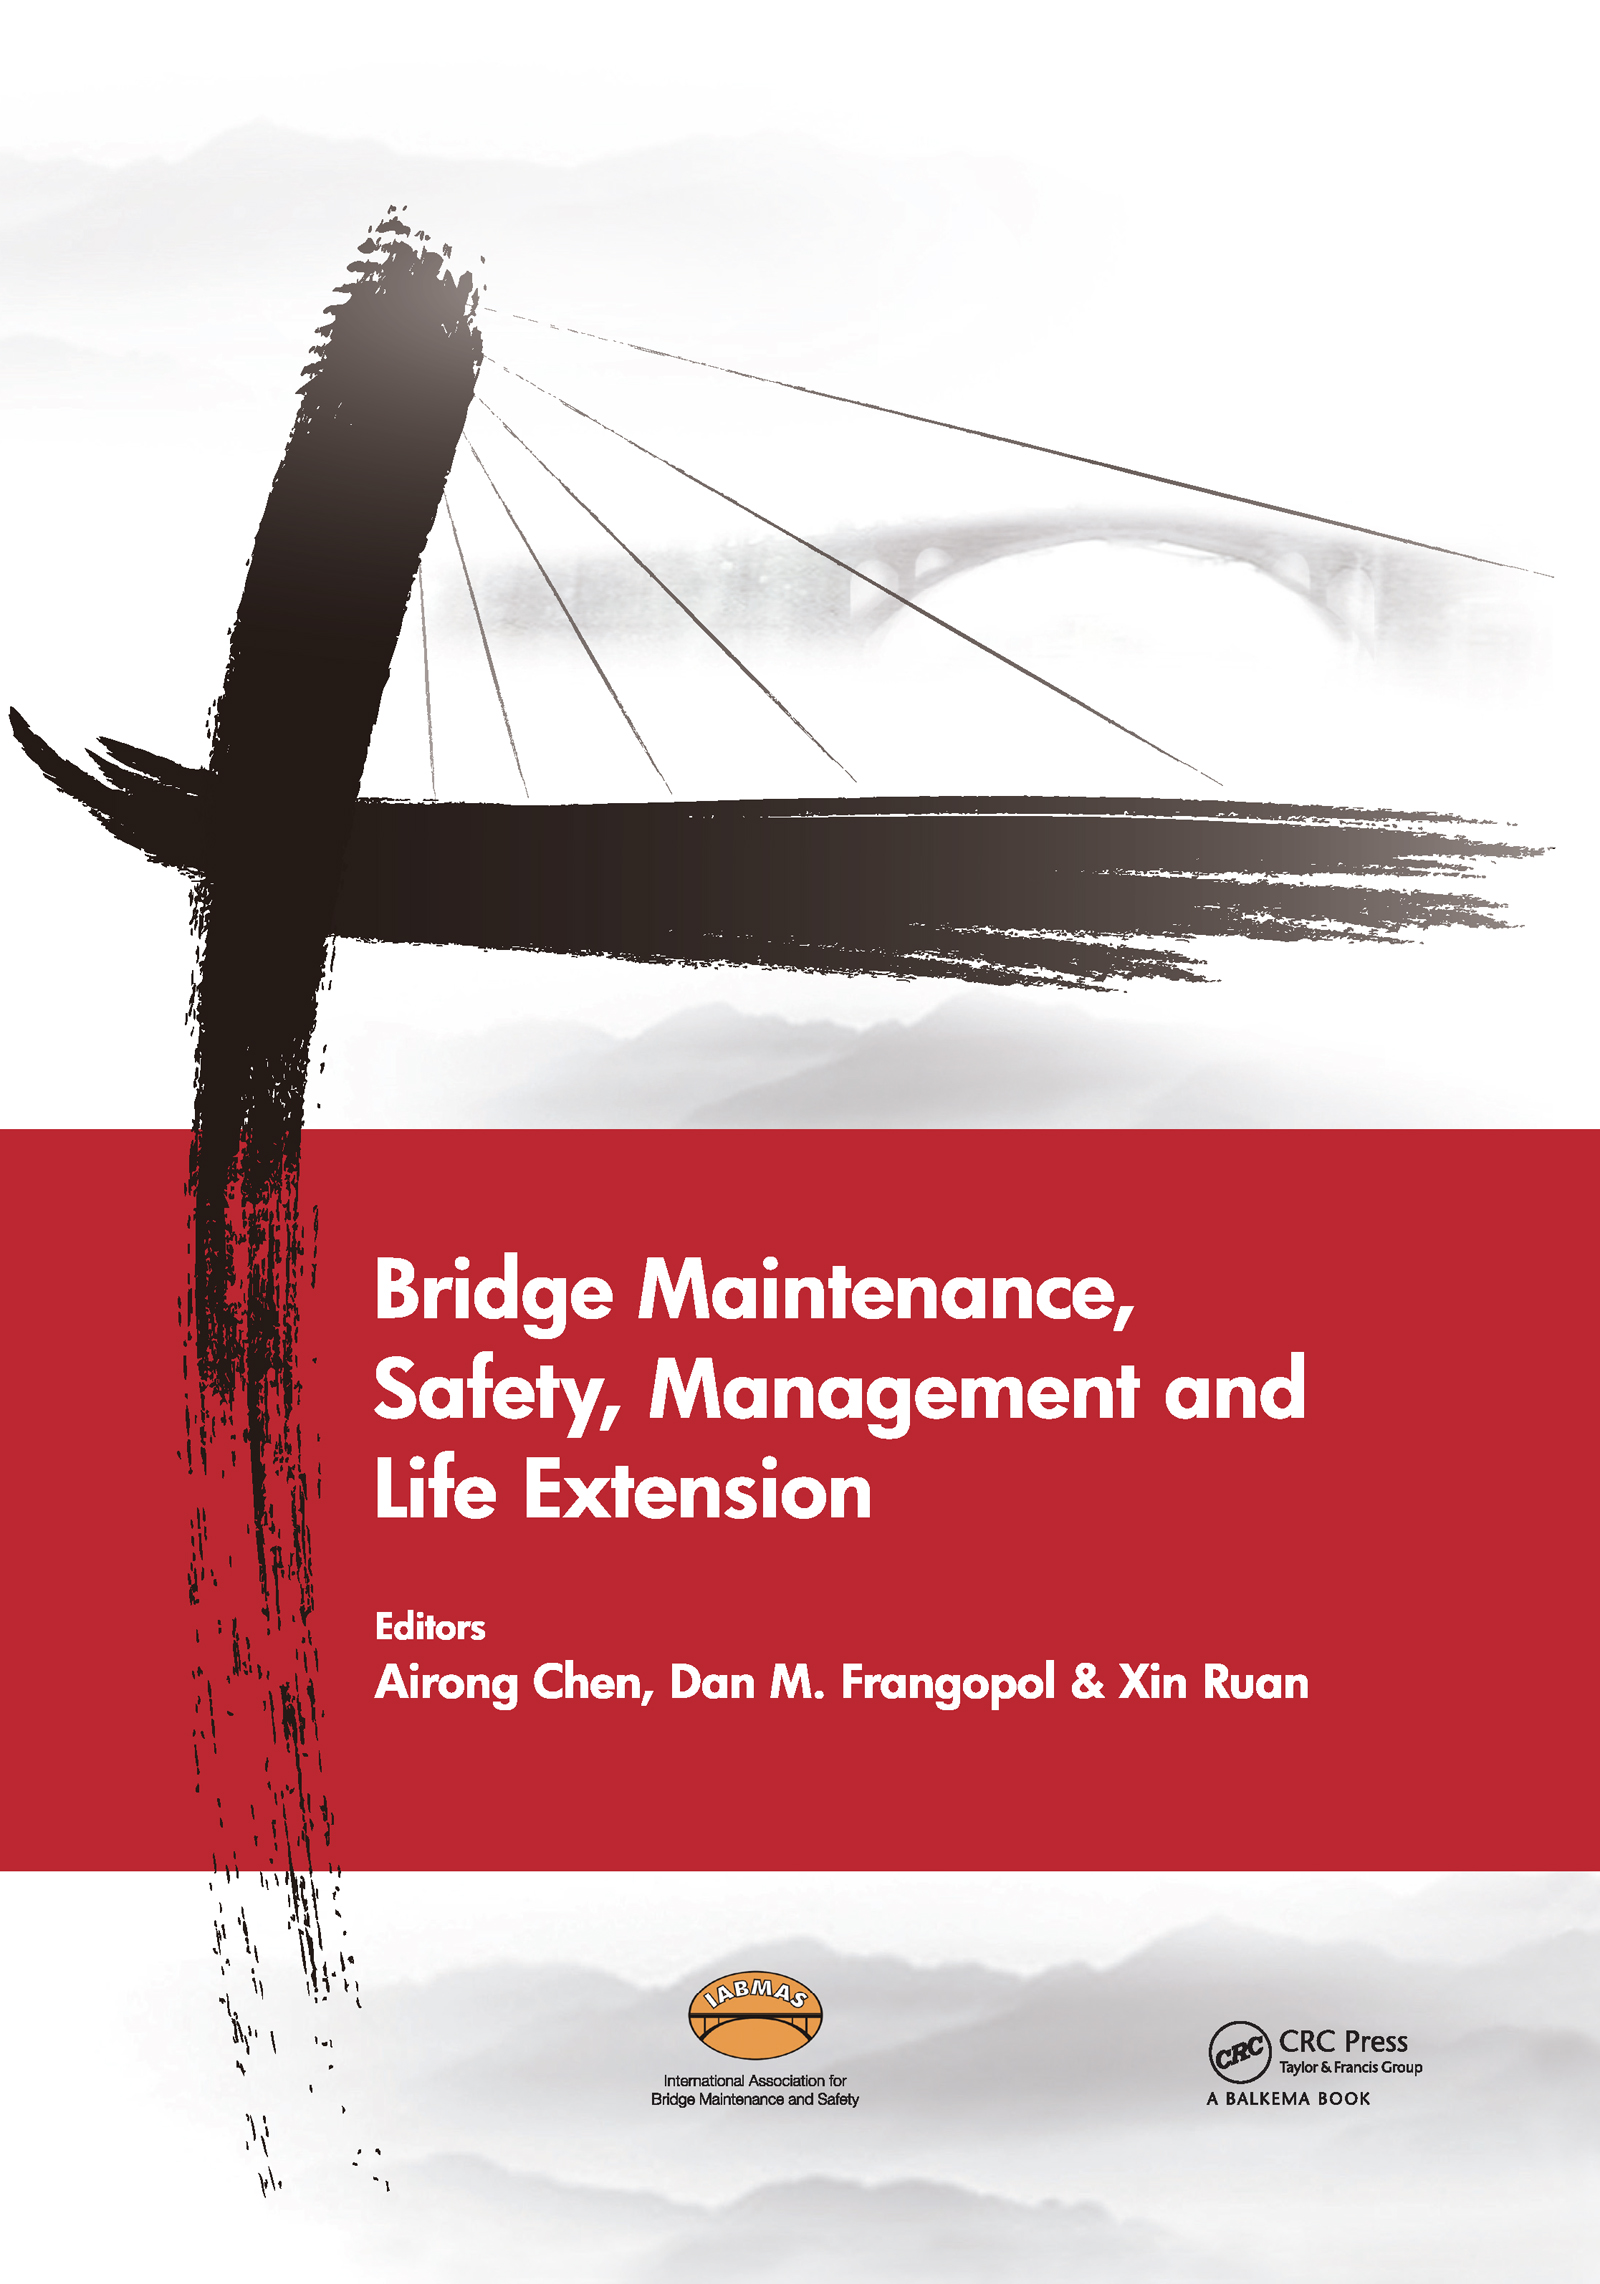 Bridge Maintenance, Safety, Management and Life Extension book cover